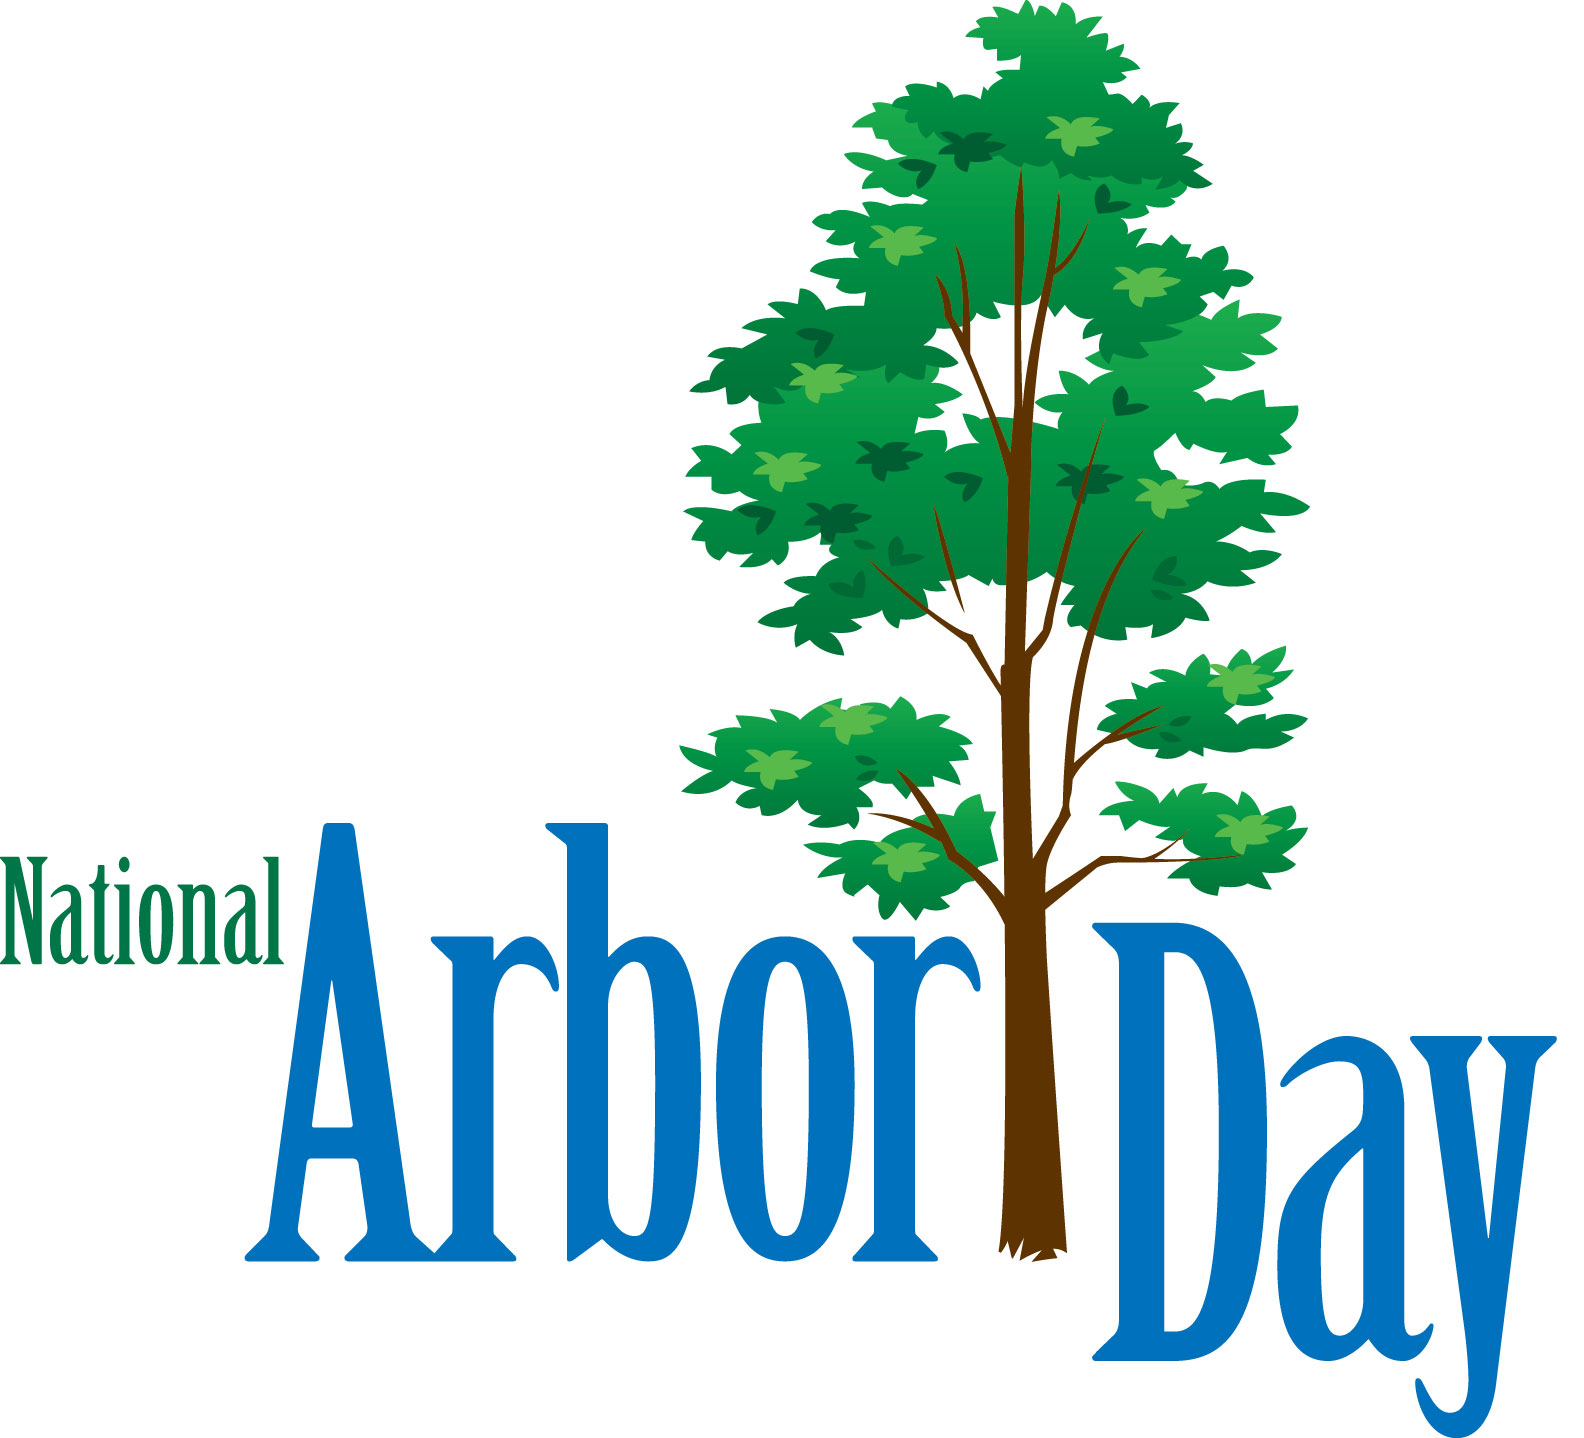 arbor day clipart clipart panda free clipart images rh clipartpanda com national arbor day clipart Armed Forces Day Clip Art